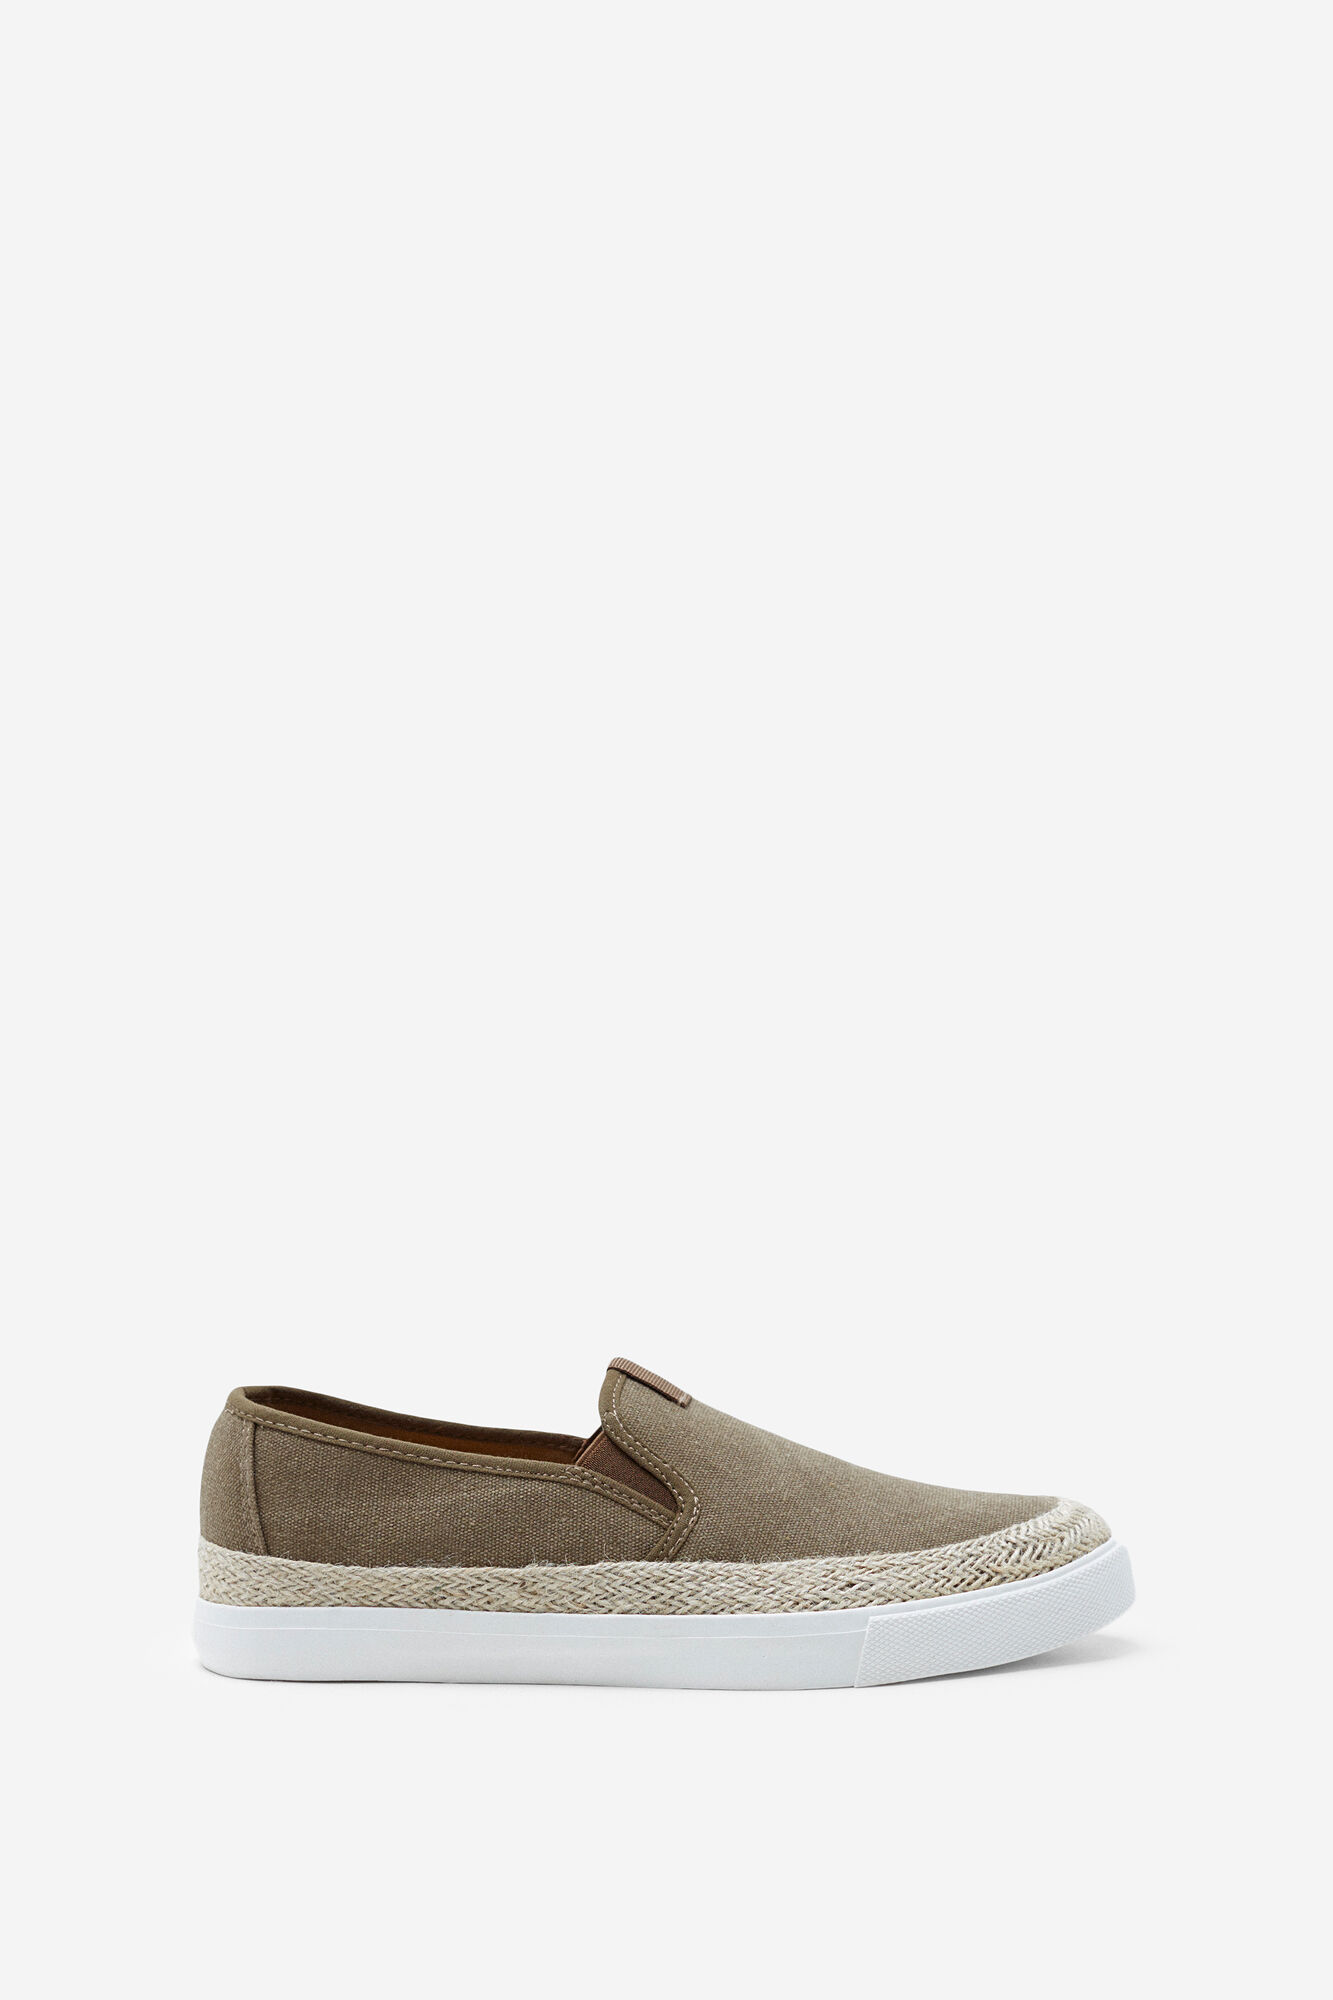 Springfield YUTE SLIP ON SNEAKERS camel. Shop Now!